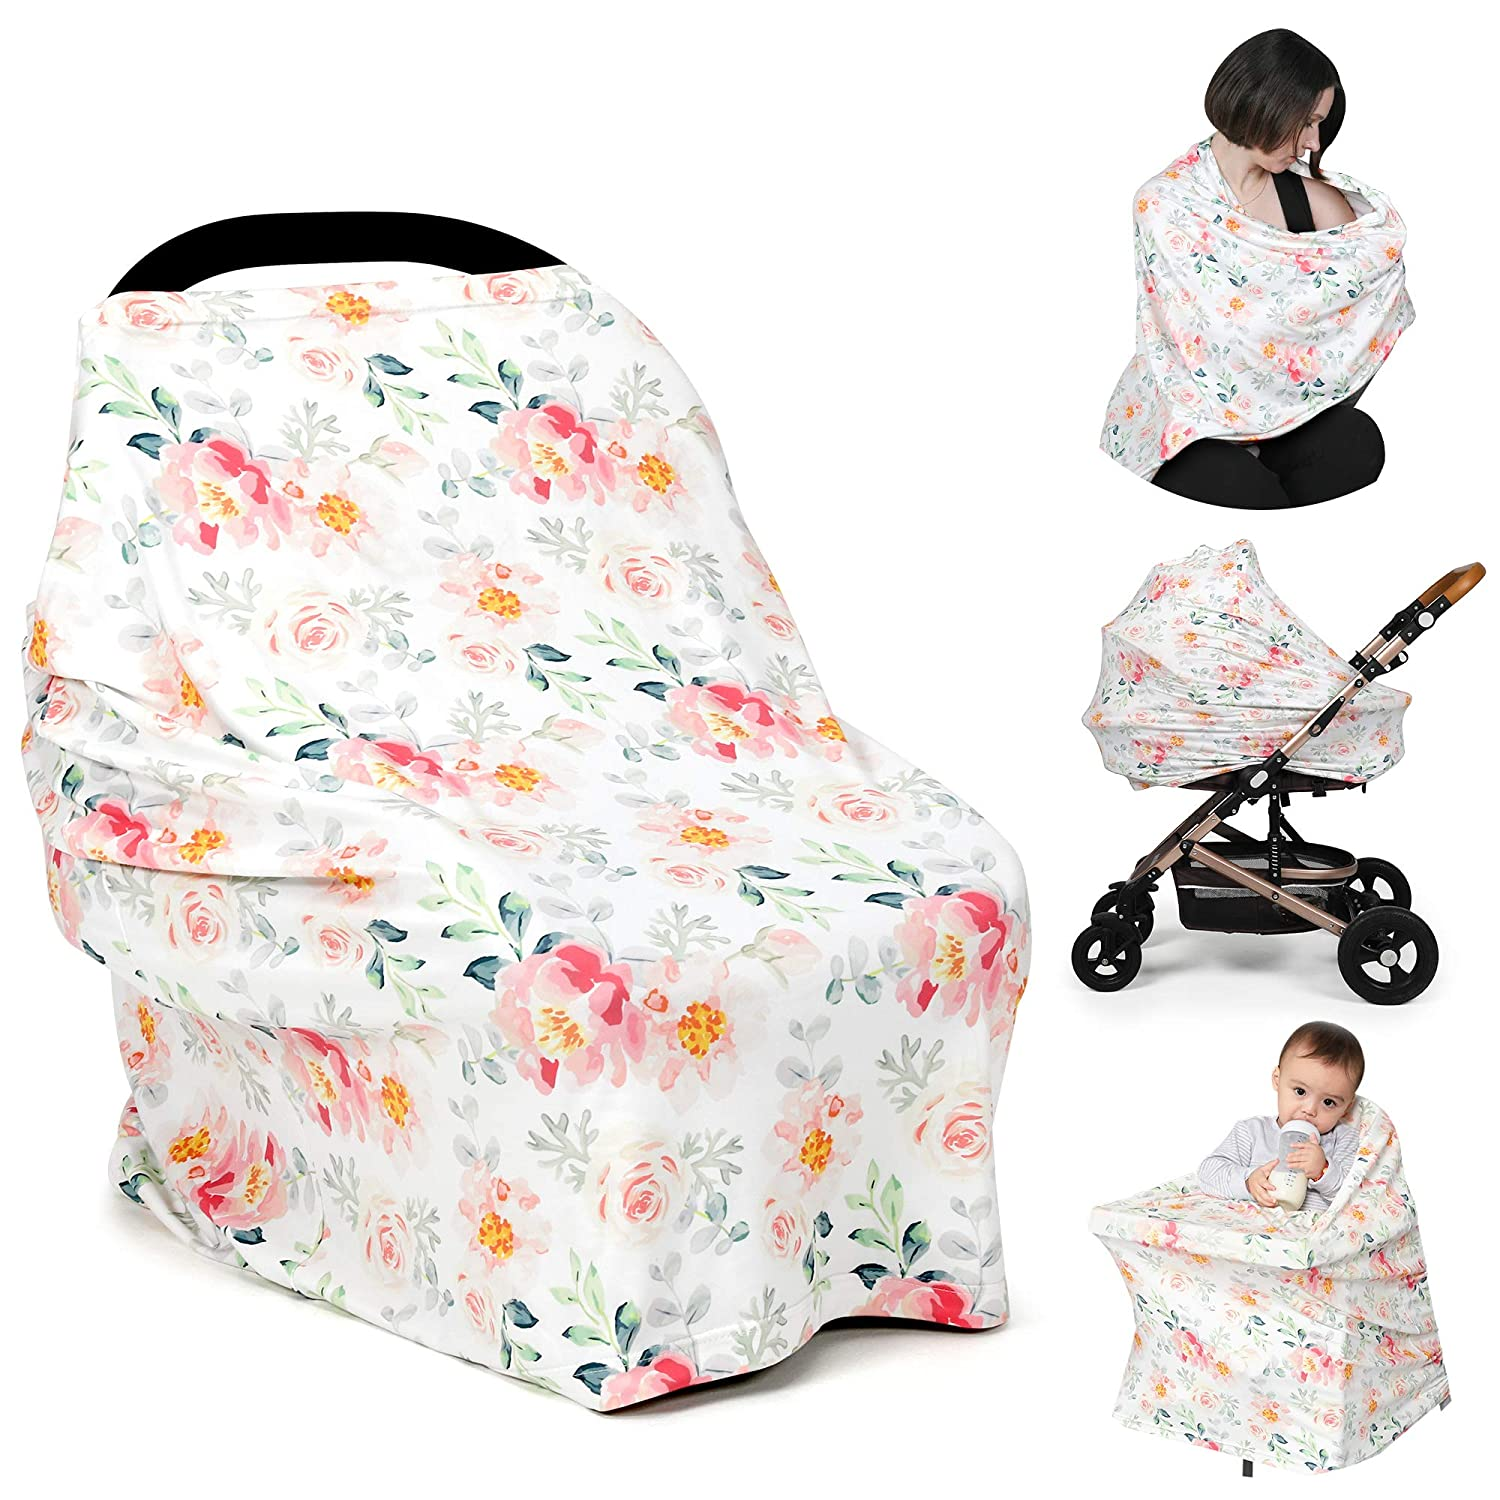 TILLYOU Dallas Mall Stretchy Jersey Brand new Knit Car for Seat Cover BabyB Canopy